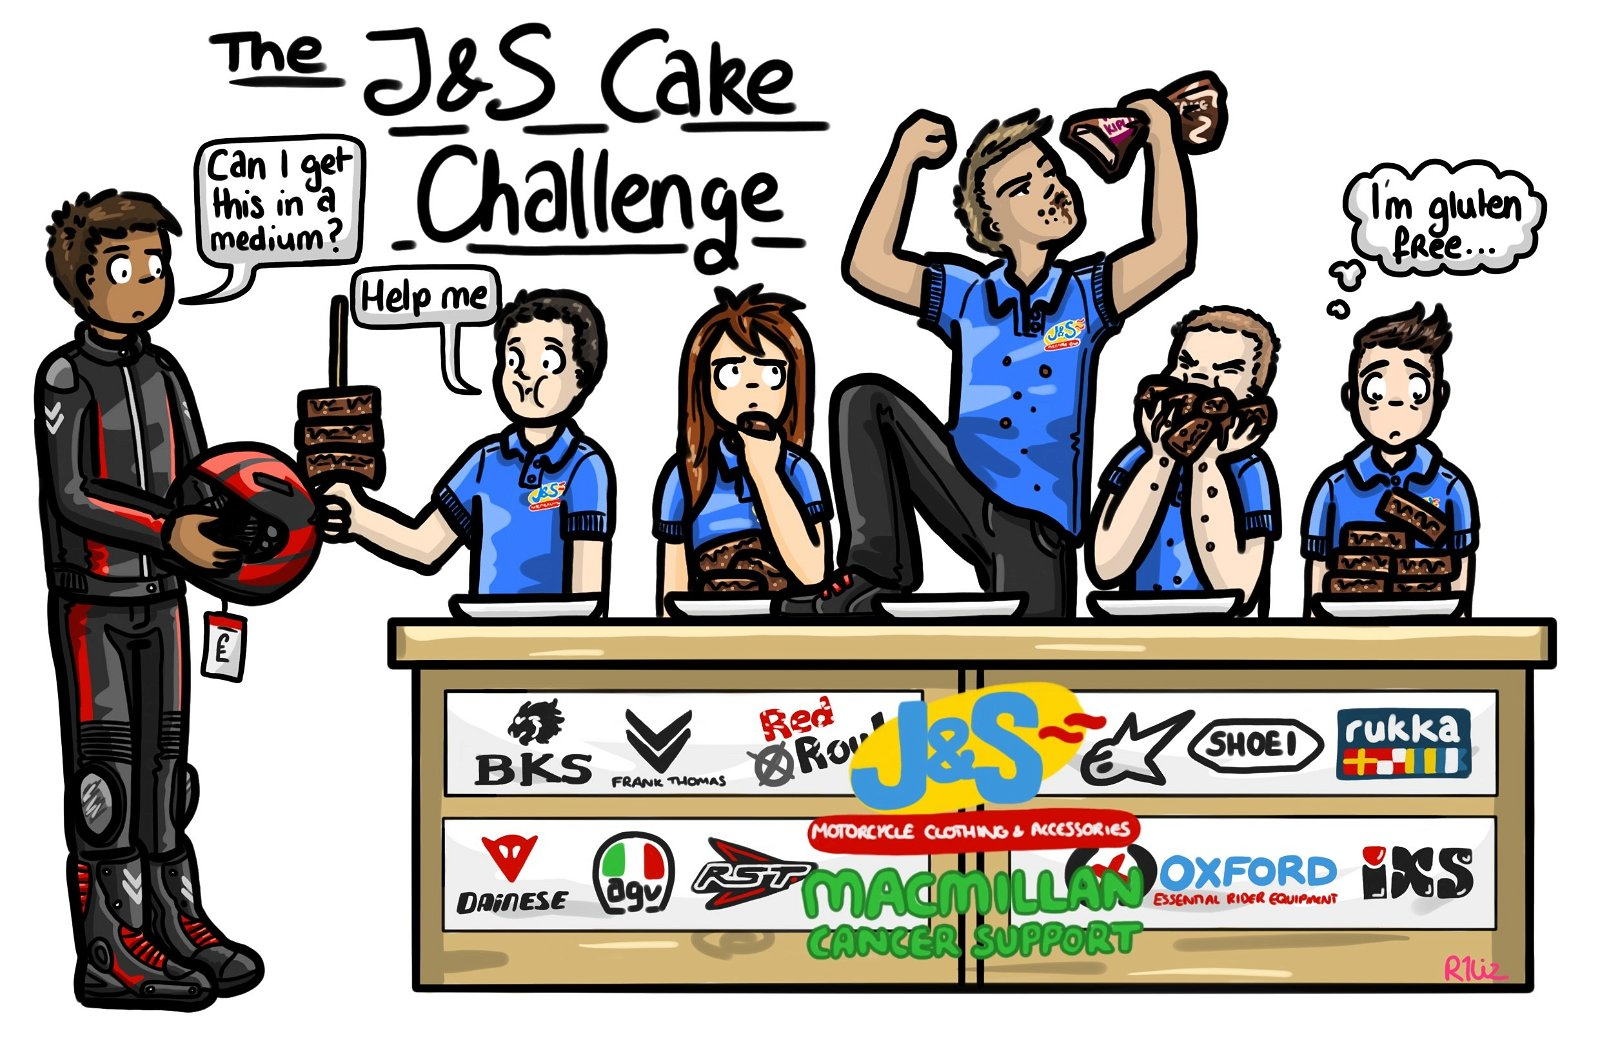 J&S Cake Challenge in aid of Macmillan Cancer Support